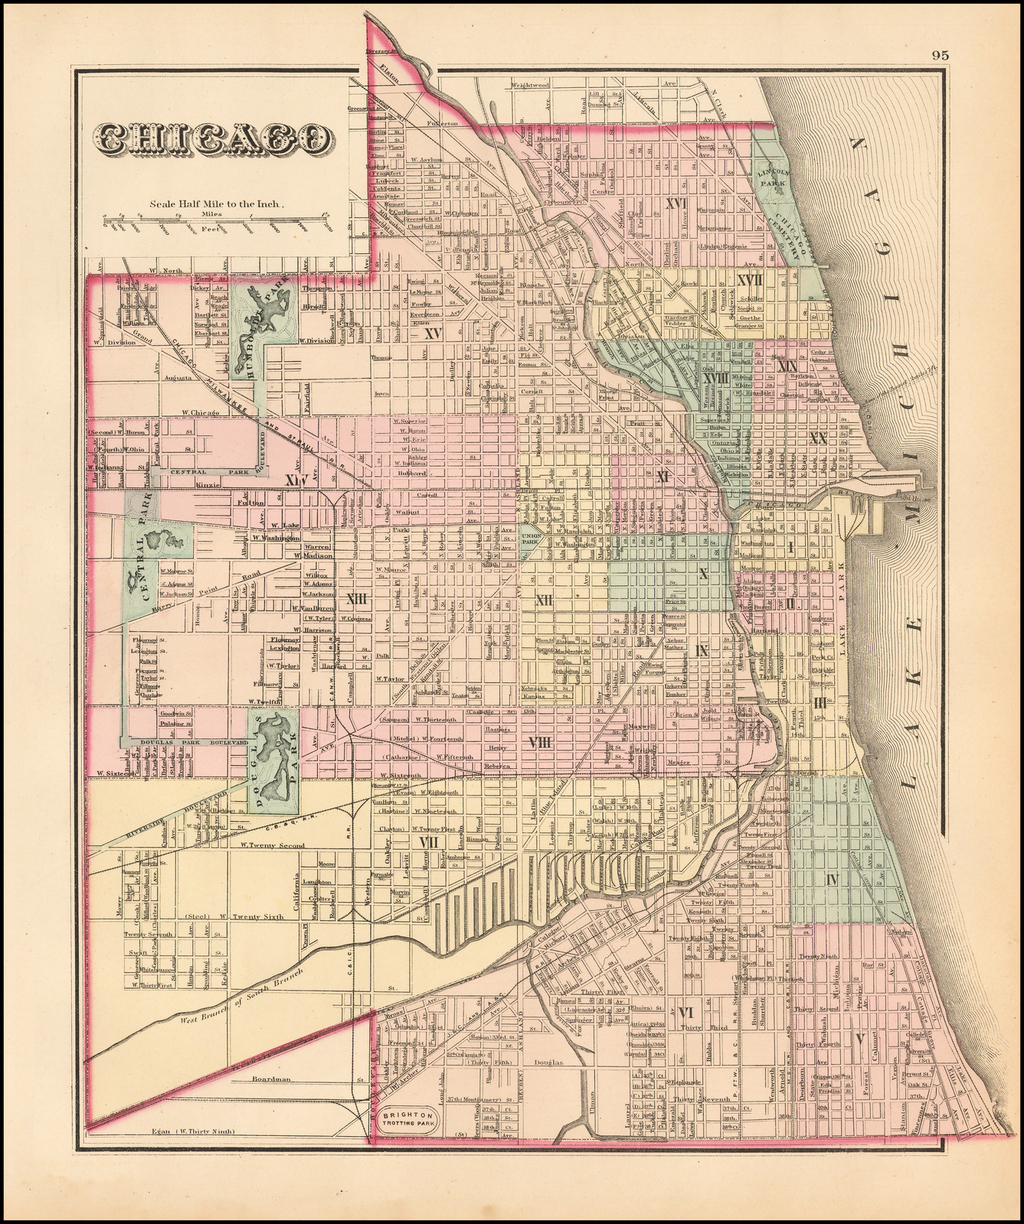 Chicago By O.W. Gray